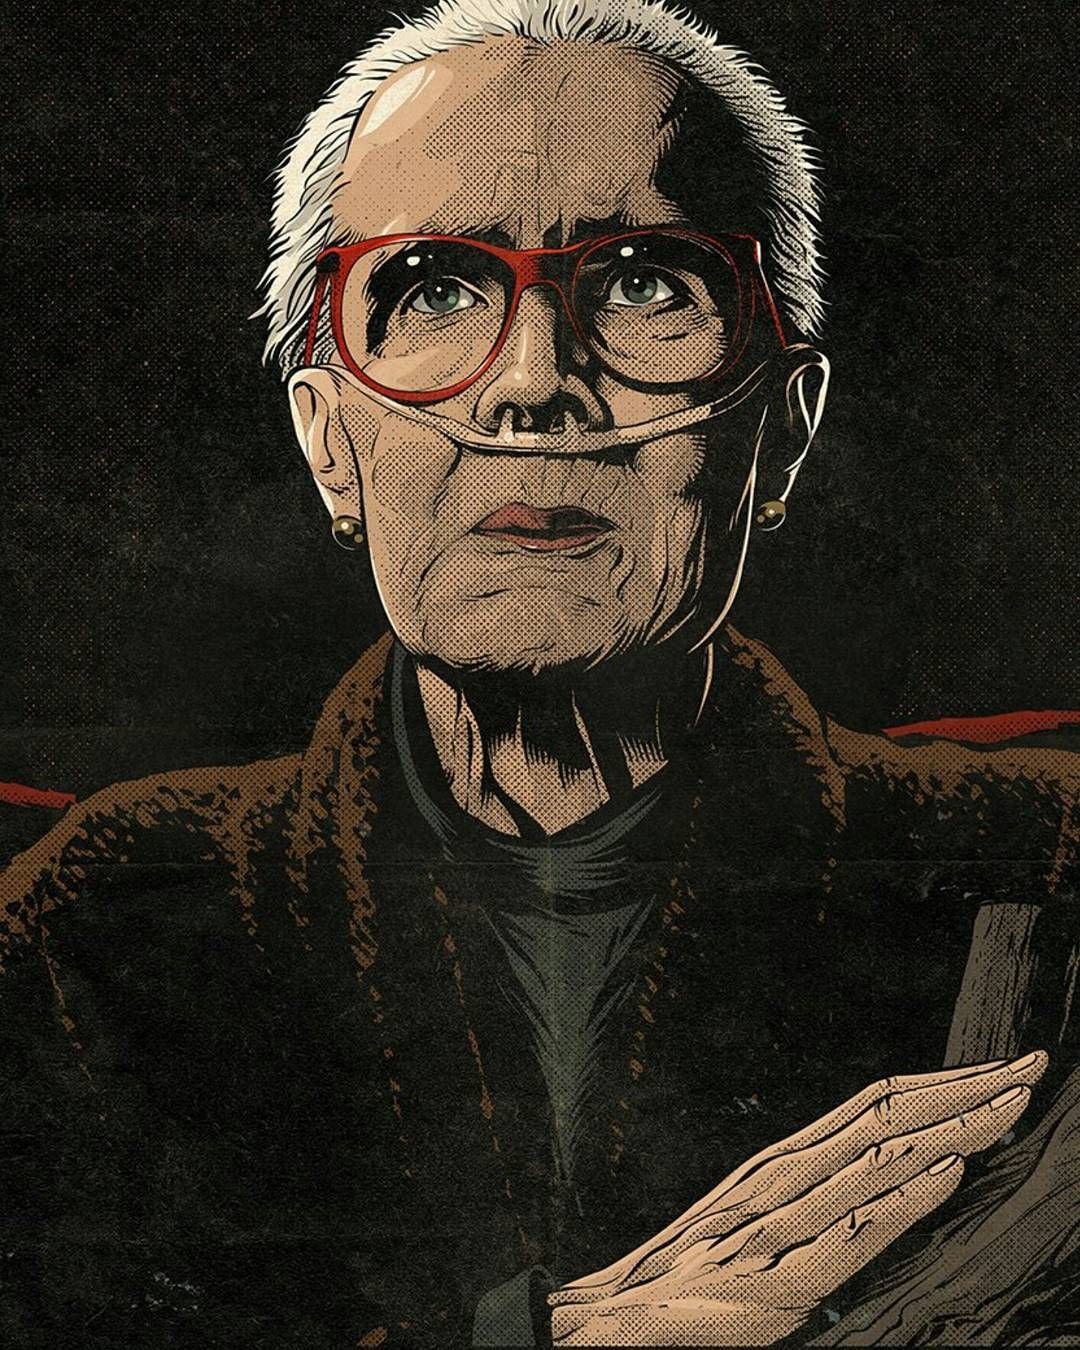 Had to screengrab this one from the crisvector Twitter account. Great #TwinPeaks illustrations. @crisvector brings us the Log Lady. . . . . #twinpeaksthereturn #thezone #catherinecaulson #margaretlanterman #theloglady #davidlynch #markfrost #twinpeaksshowtime #lauraistheone #petepeppers